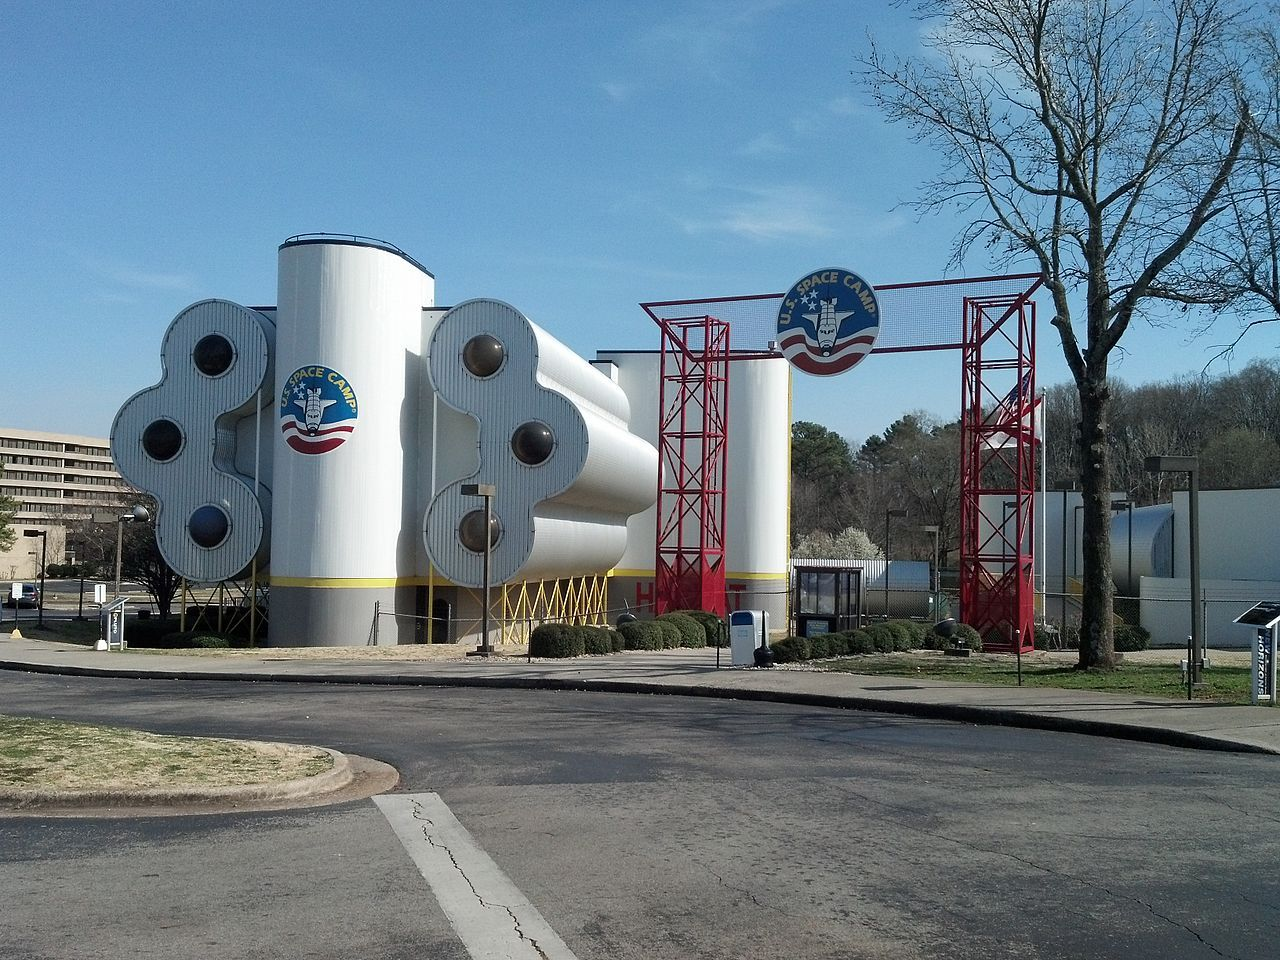 """Huntsville: At <a target=""""_blank"""" href=""""http://www.spacecamp.com/"""">Space Camp</a> you'll get your hands on flight simulators, lunar landers, model rockets, and more."""